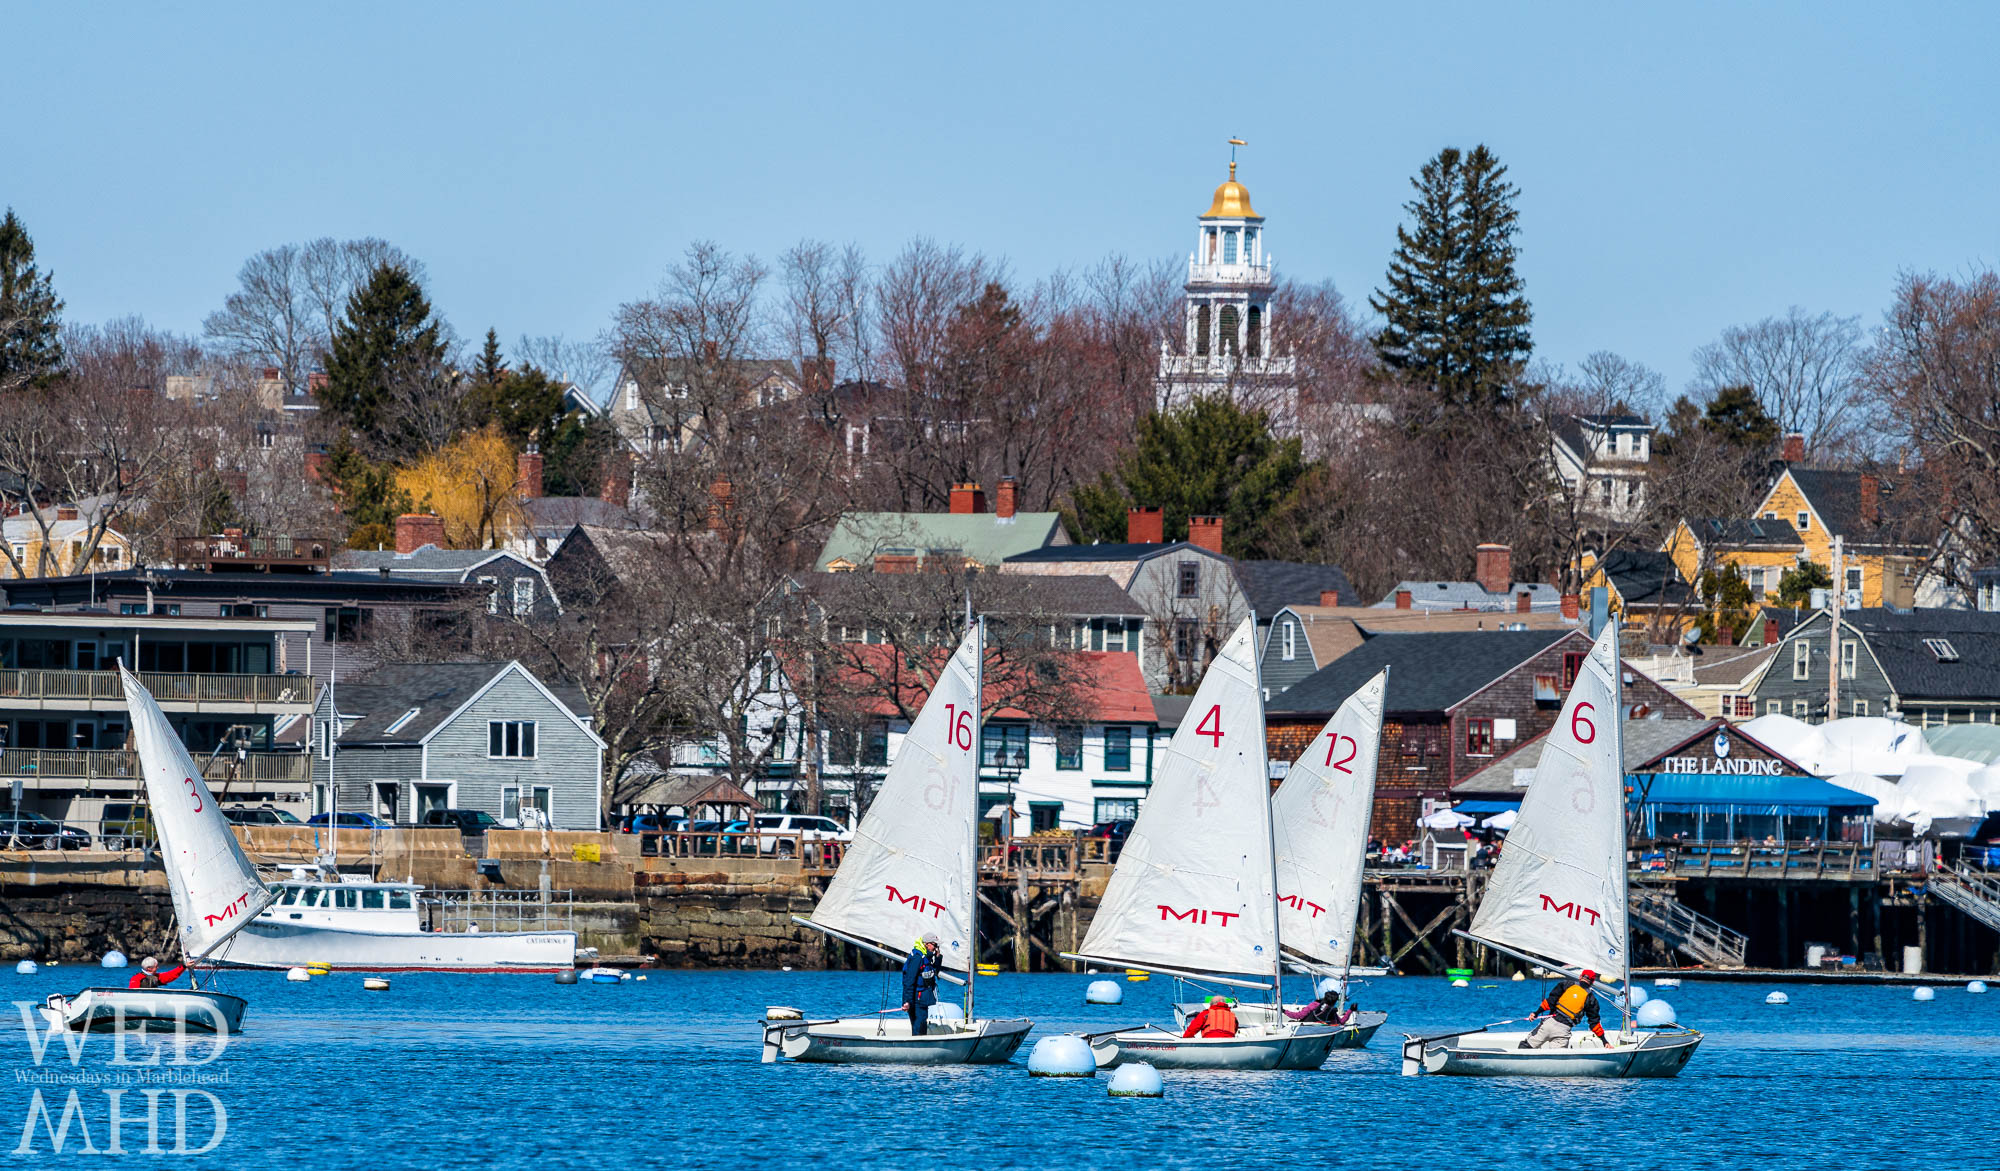 A group is seen passing by The Landing restaurant and Old North Church during the Marblehead Tech Dinghy Association inner harbor race